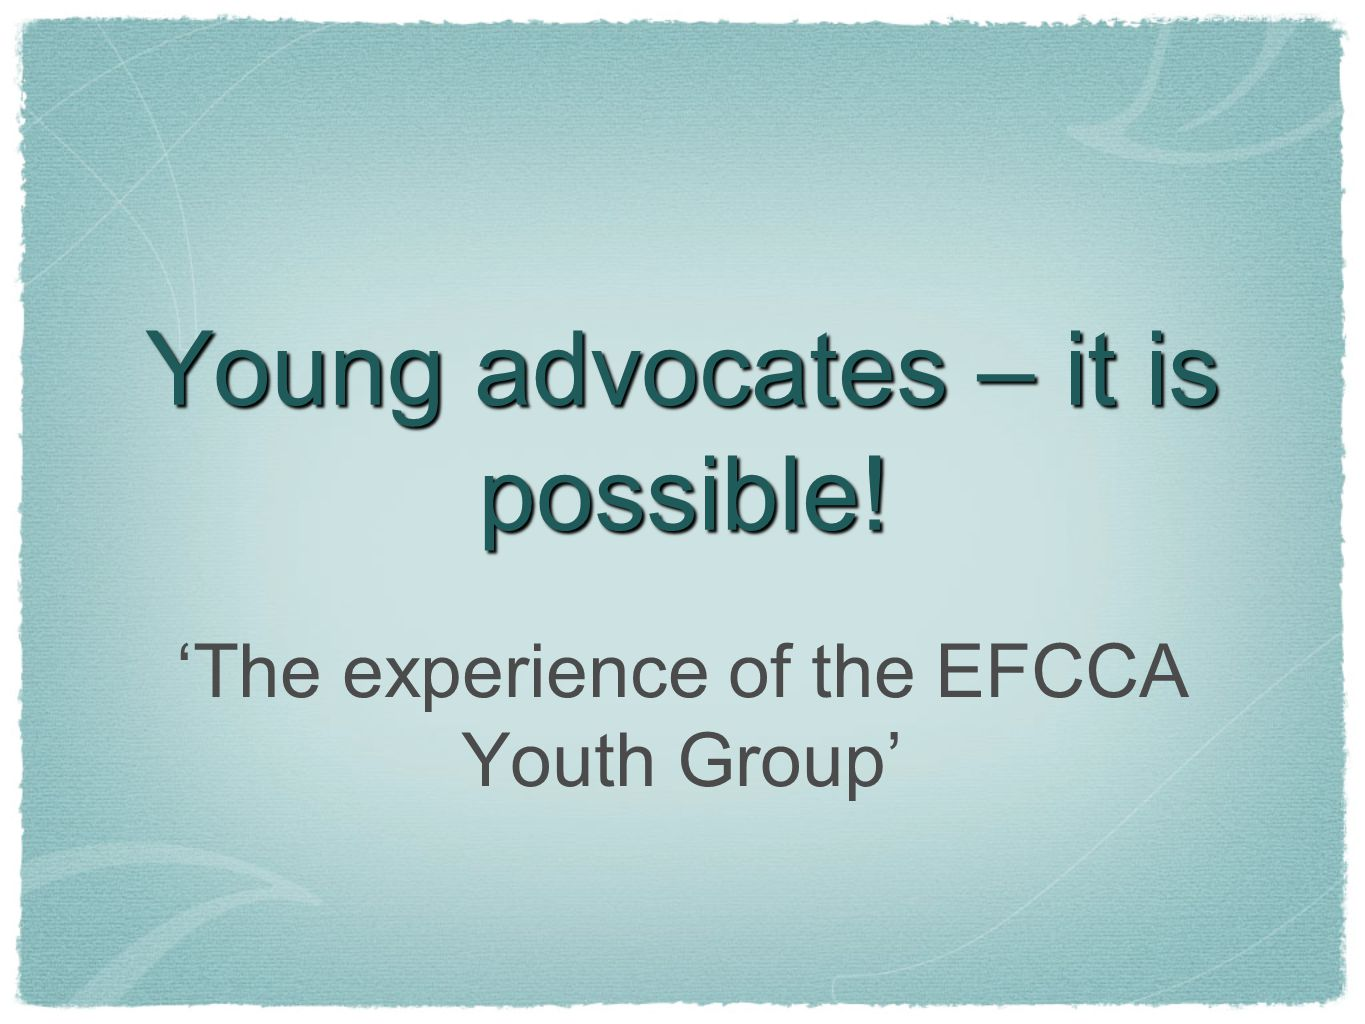 Young advocates – it is possible! 'The experience of the EFCCA Youth Group'